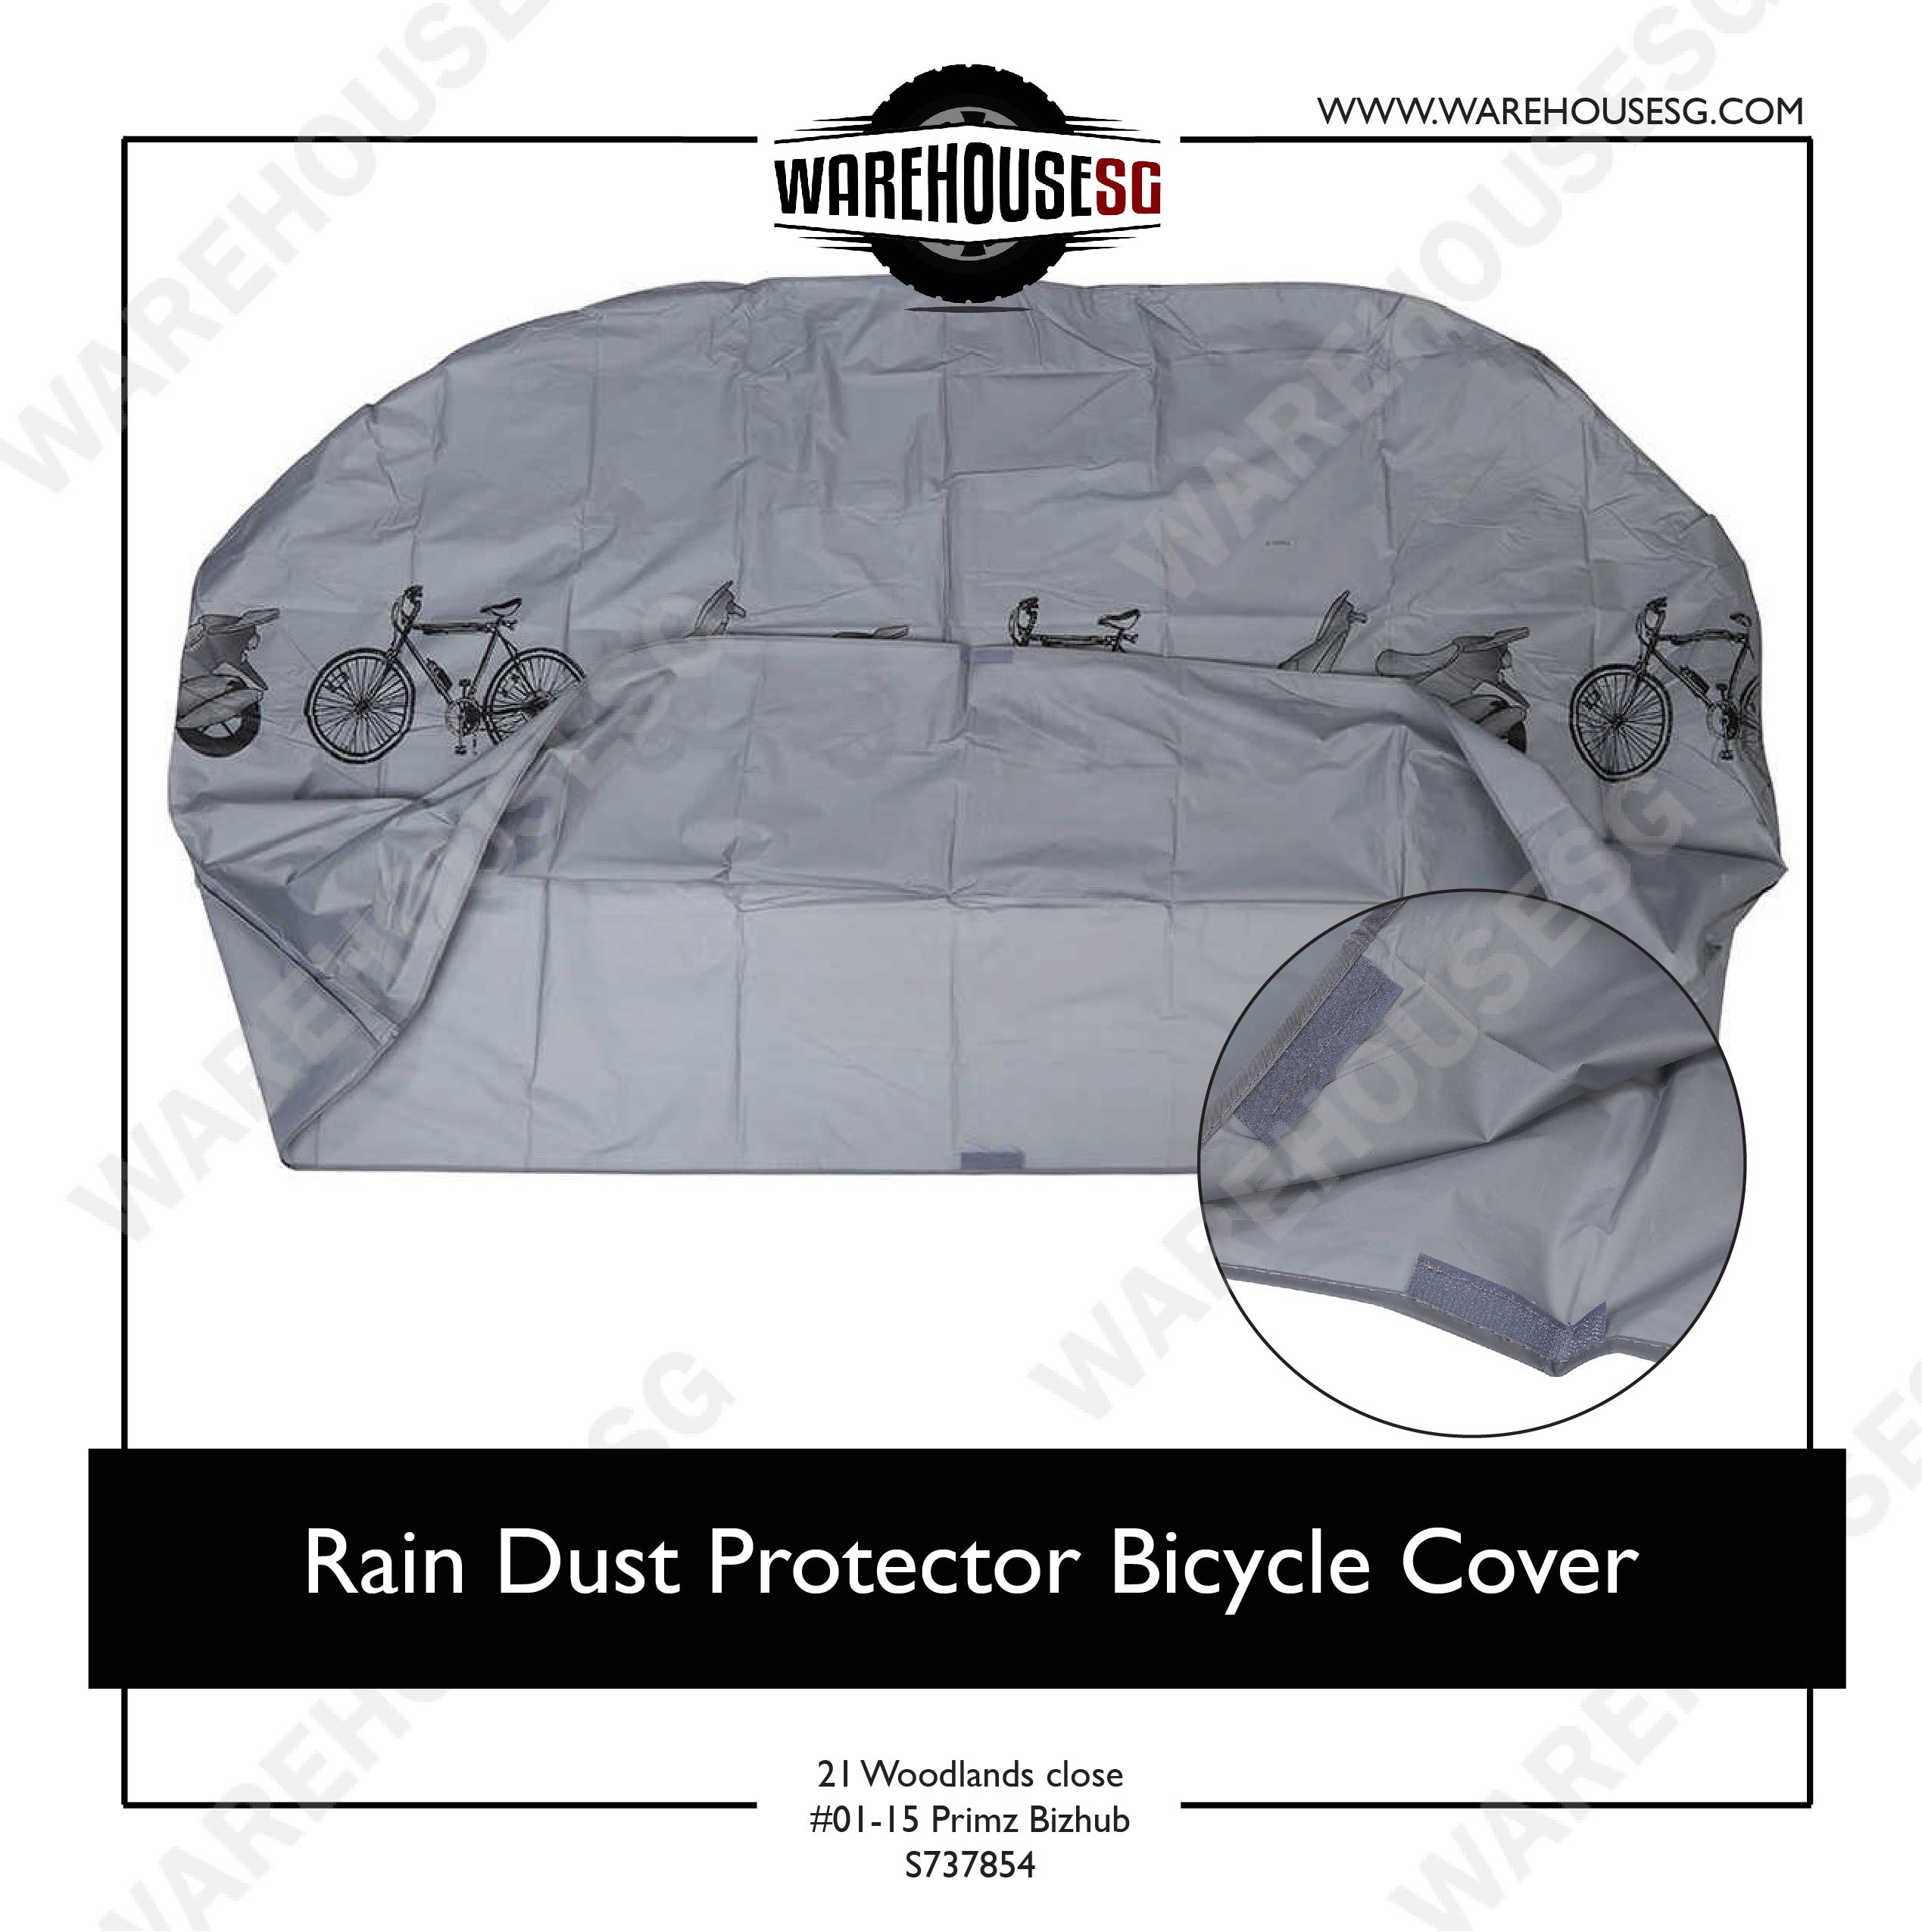 Rain Dust Protector Bicycle Cover